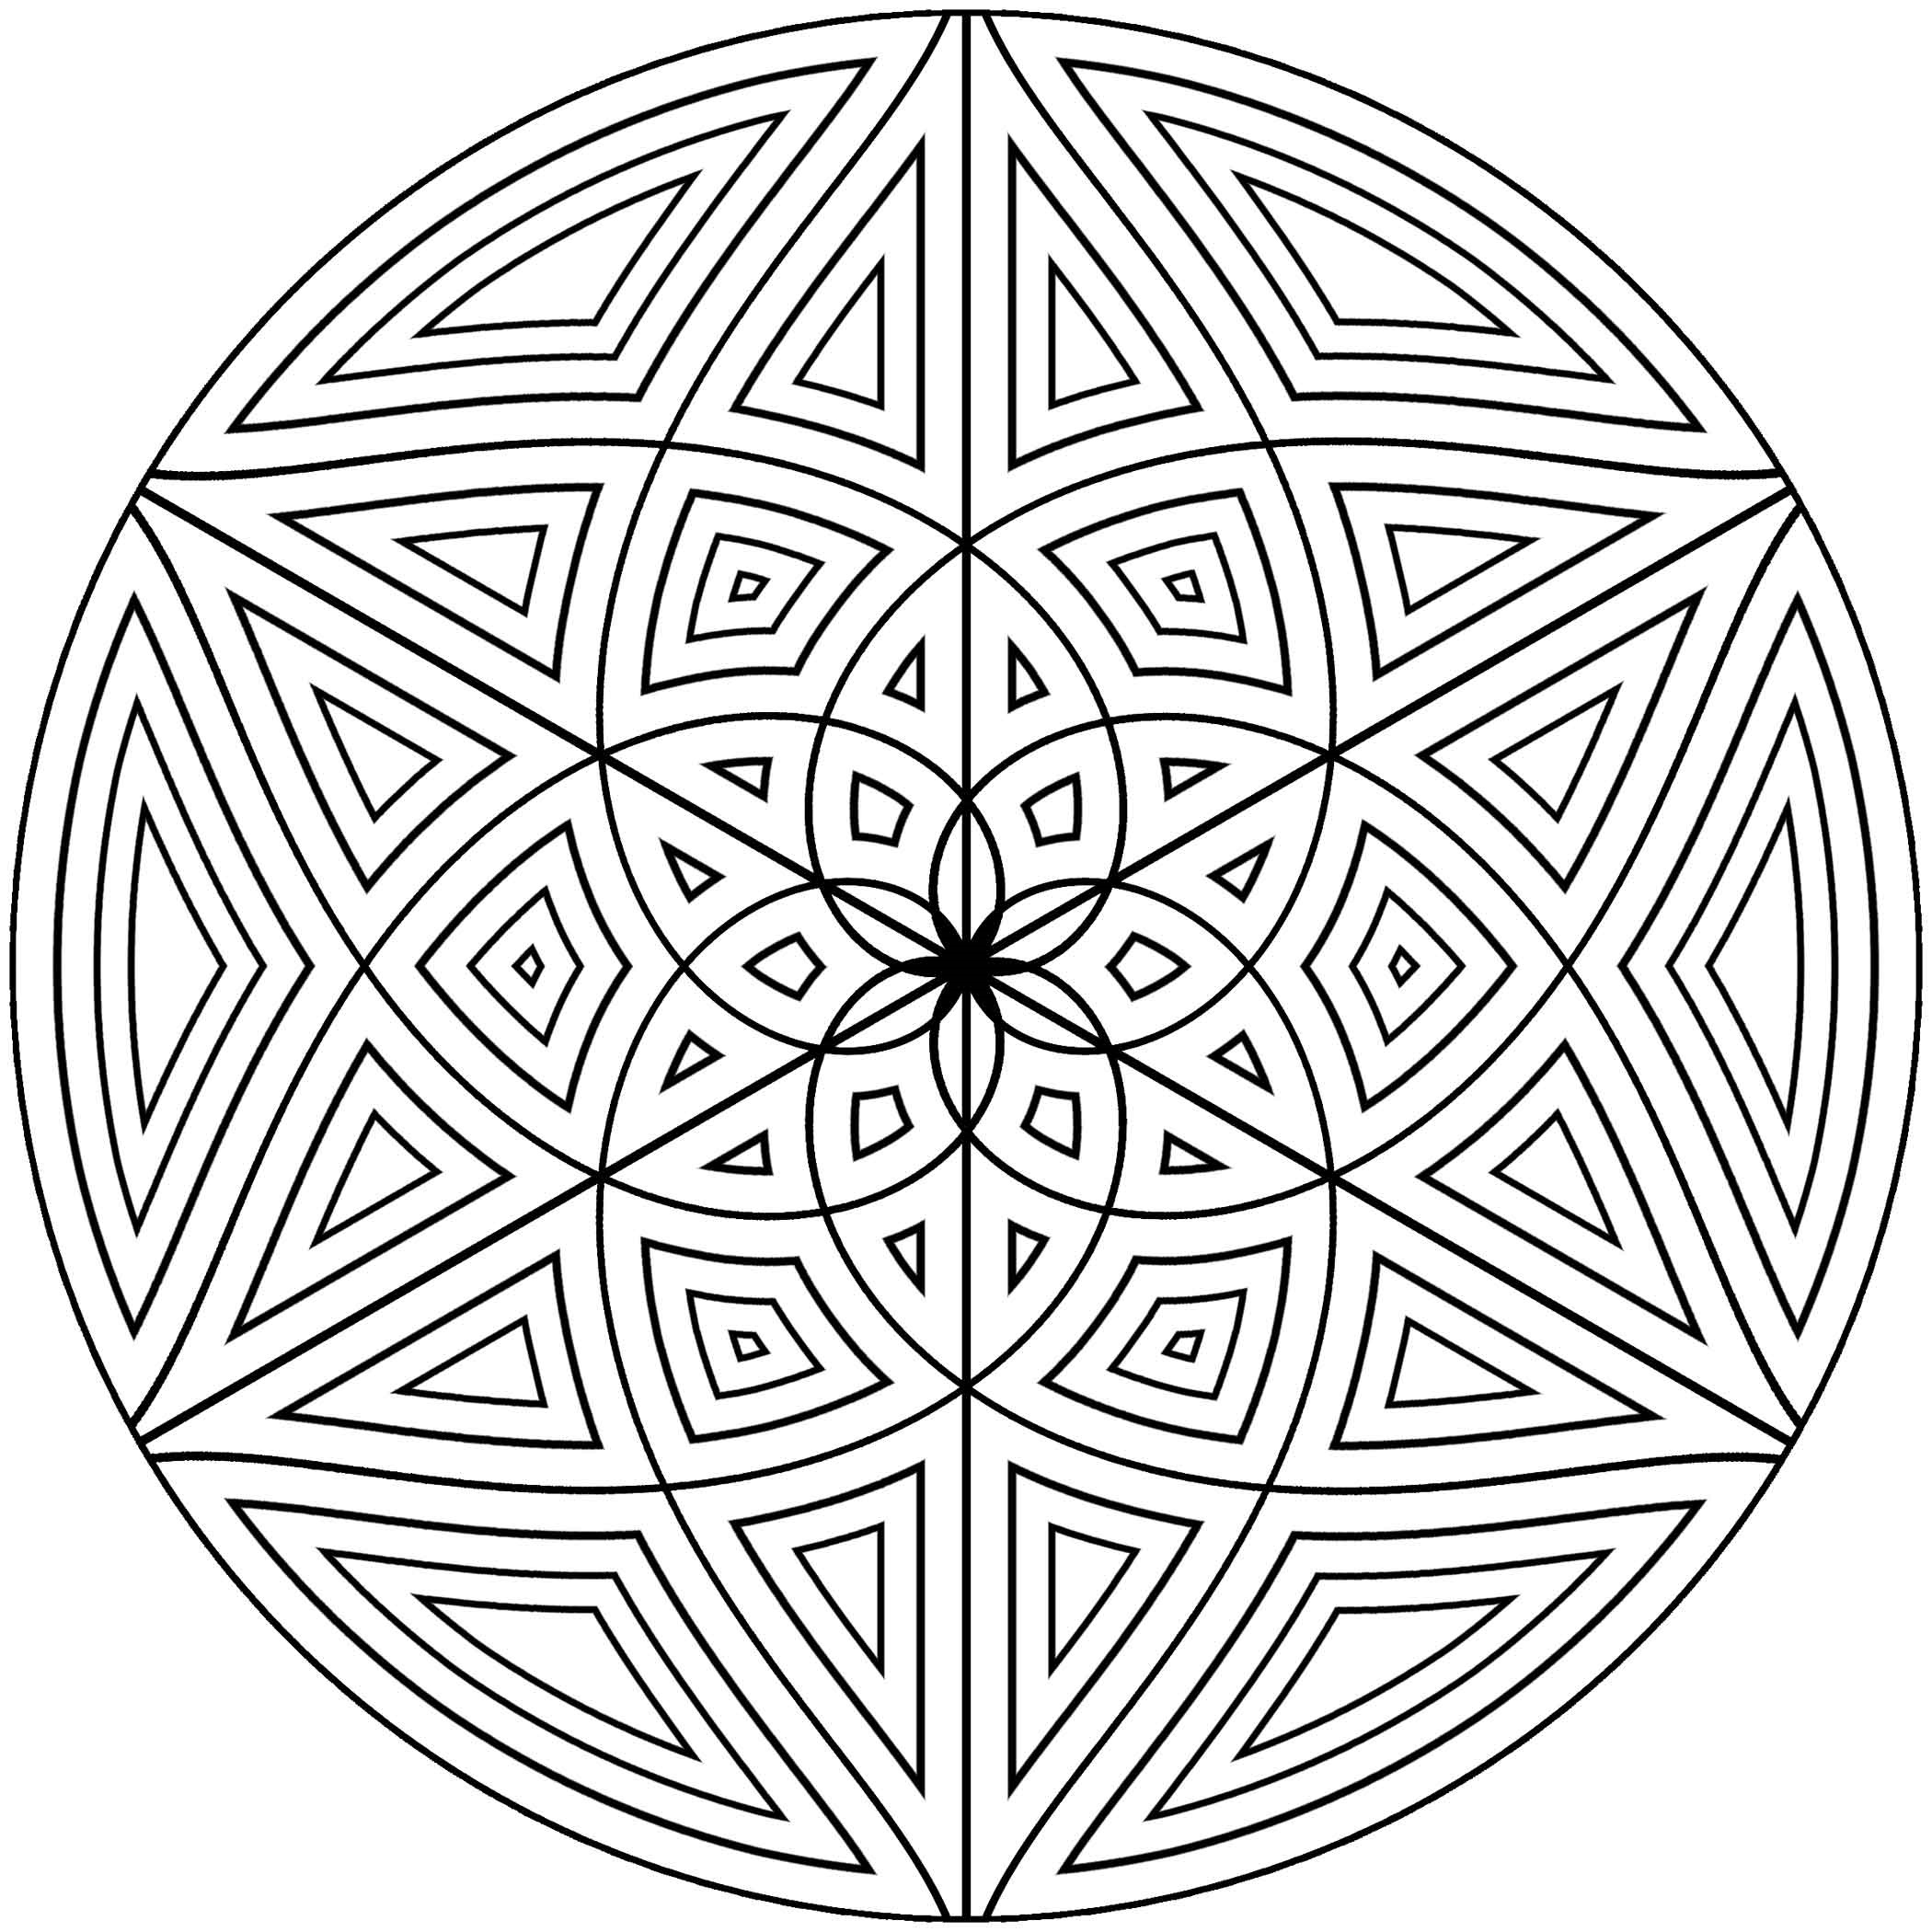 Coloring pages patterns - Geometric Designs To Color